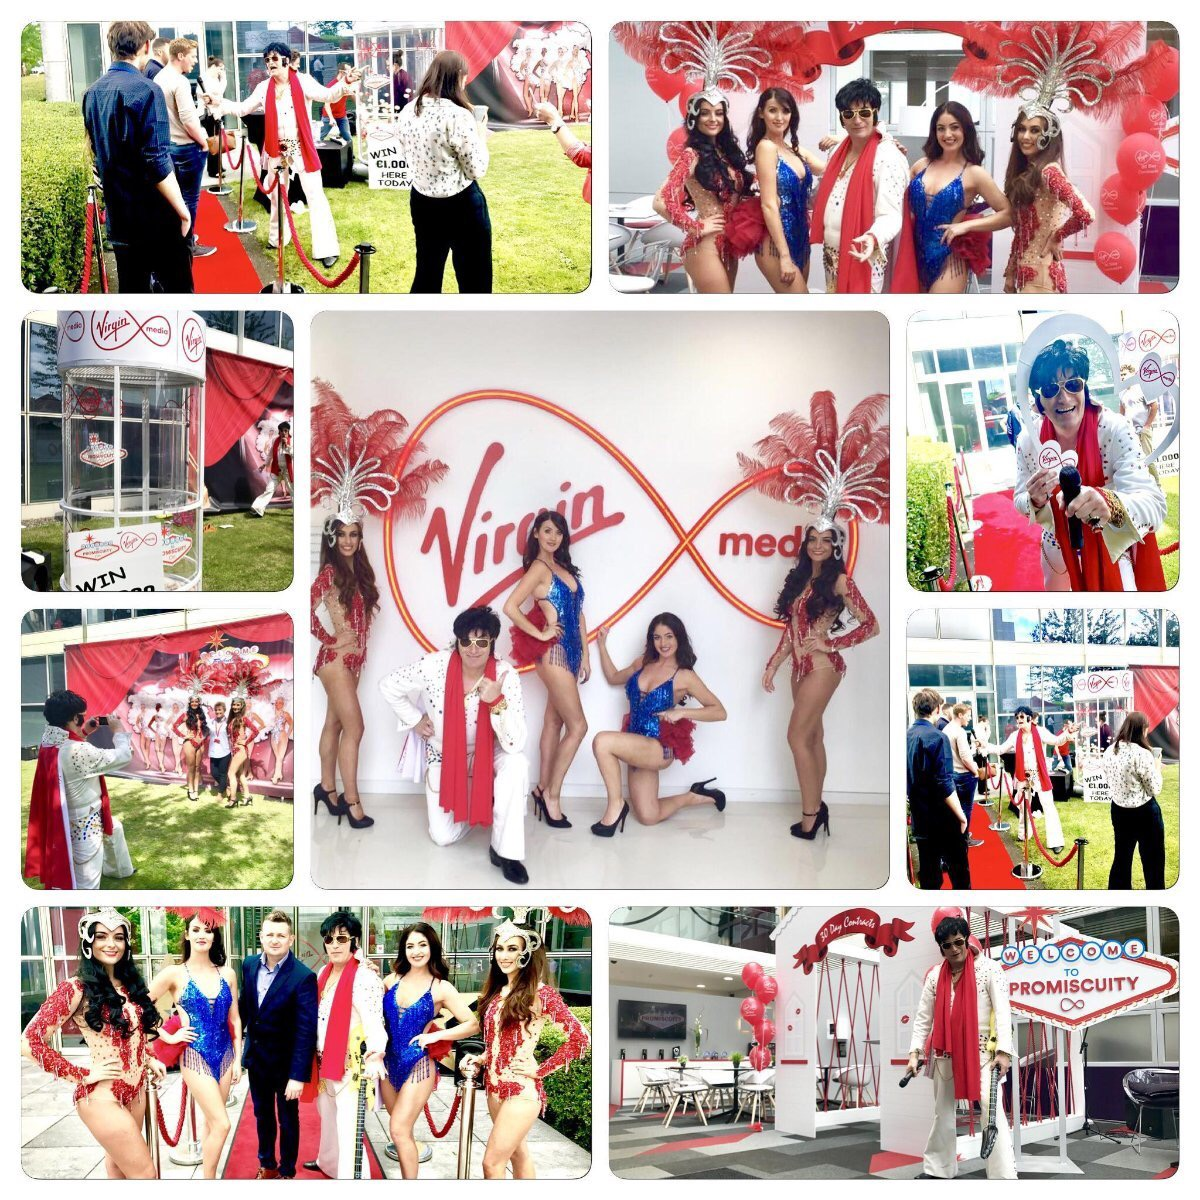 BRAND ACTIVATION EVENT FOR VIRGIN MEDIA